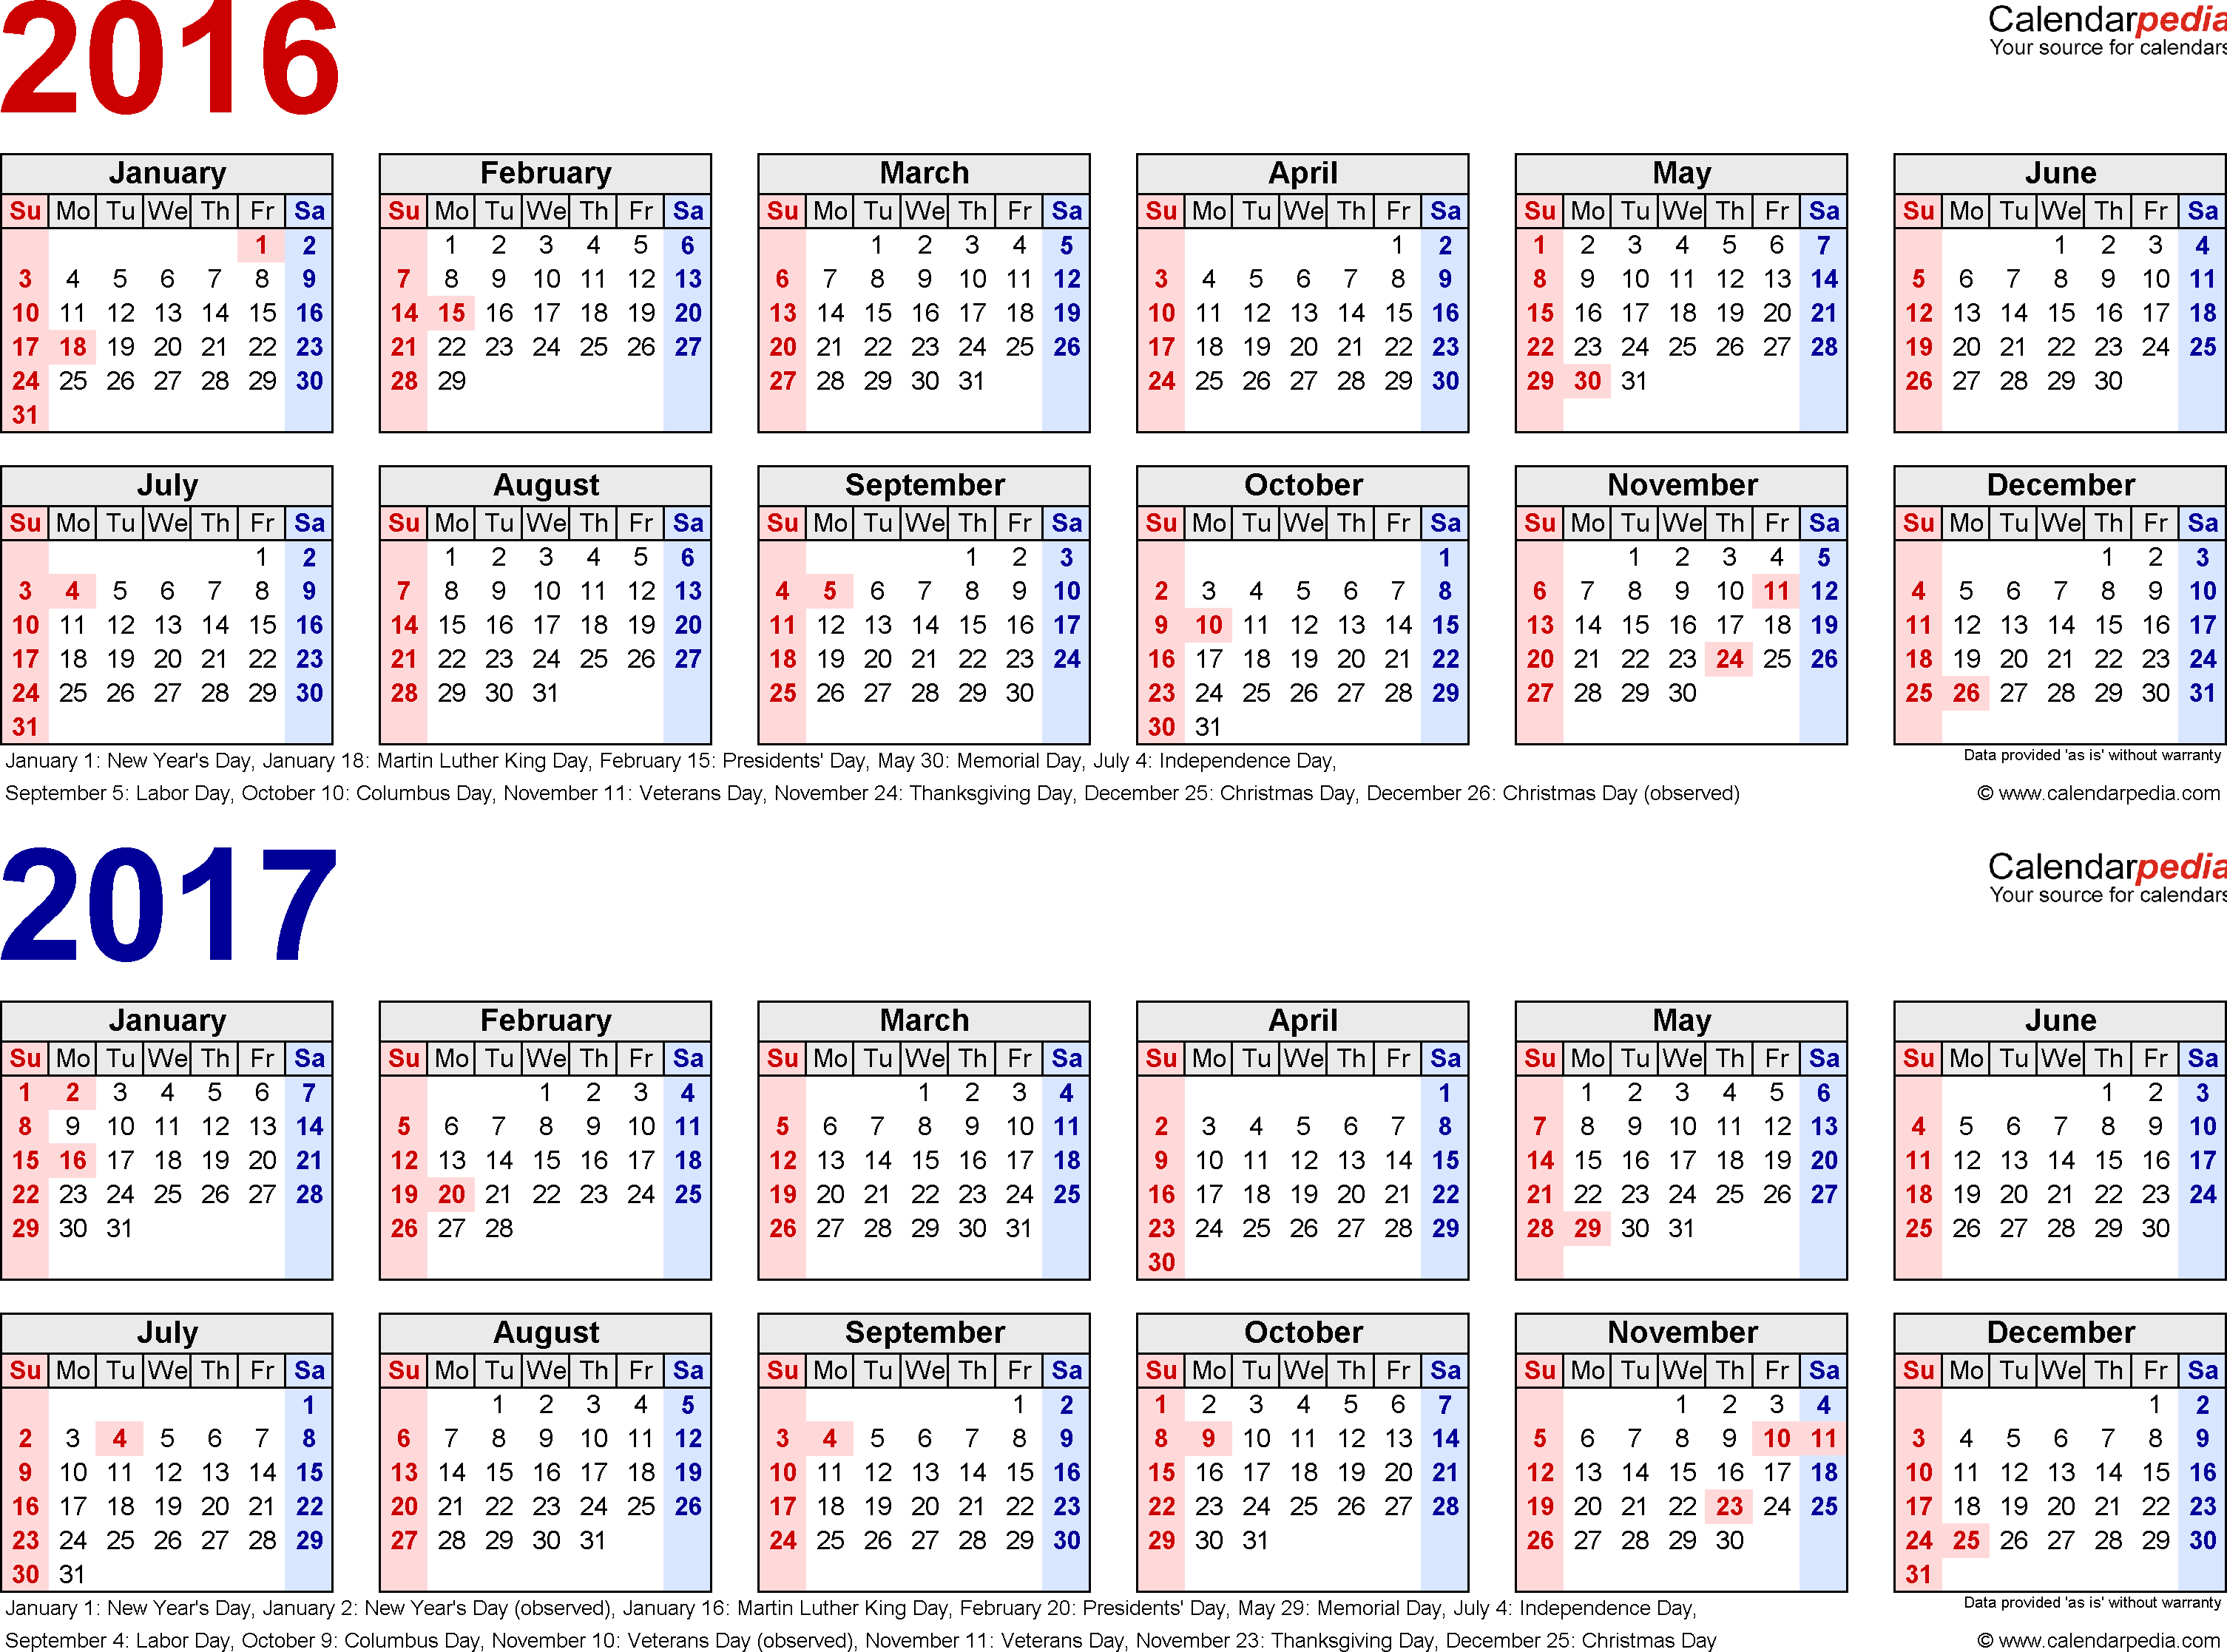 Template 1: PDF template for two year calendar 2016/2017 (landscape orientation, 1 page, in red and blue)